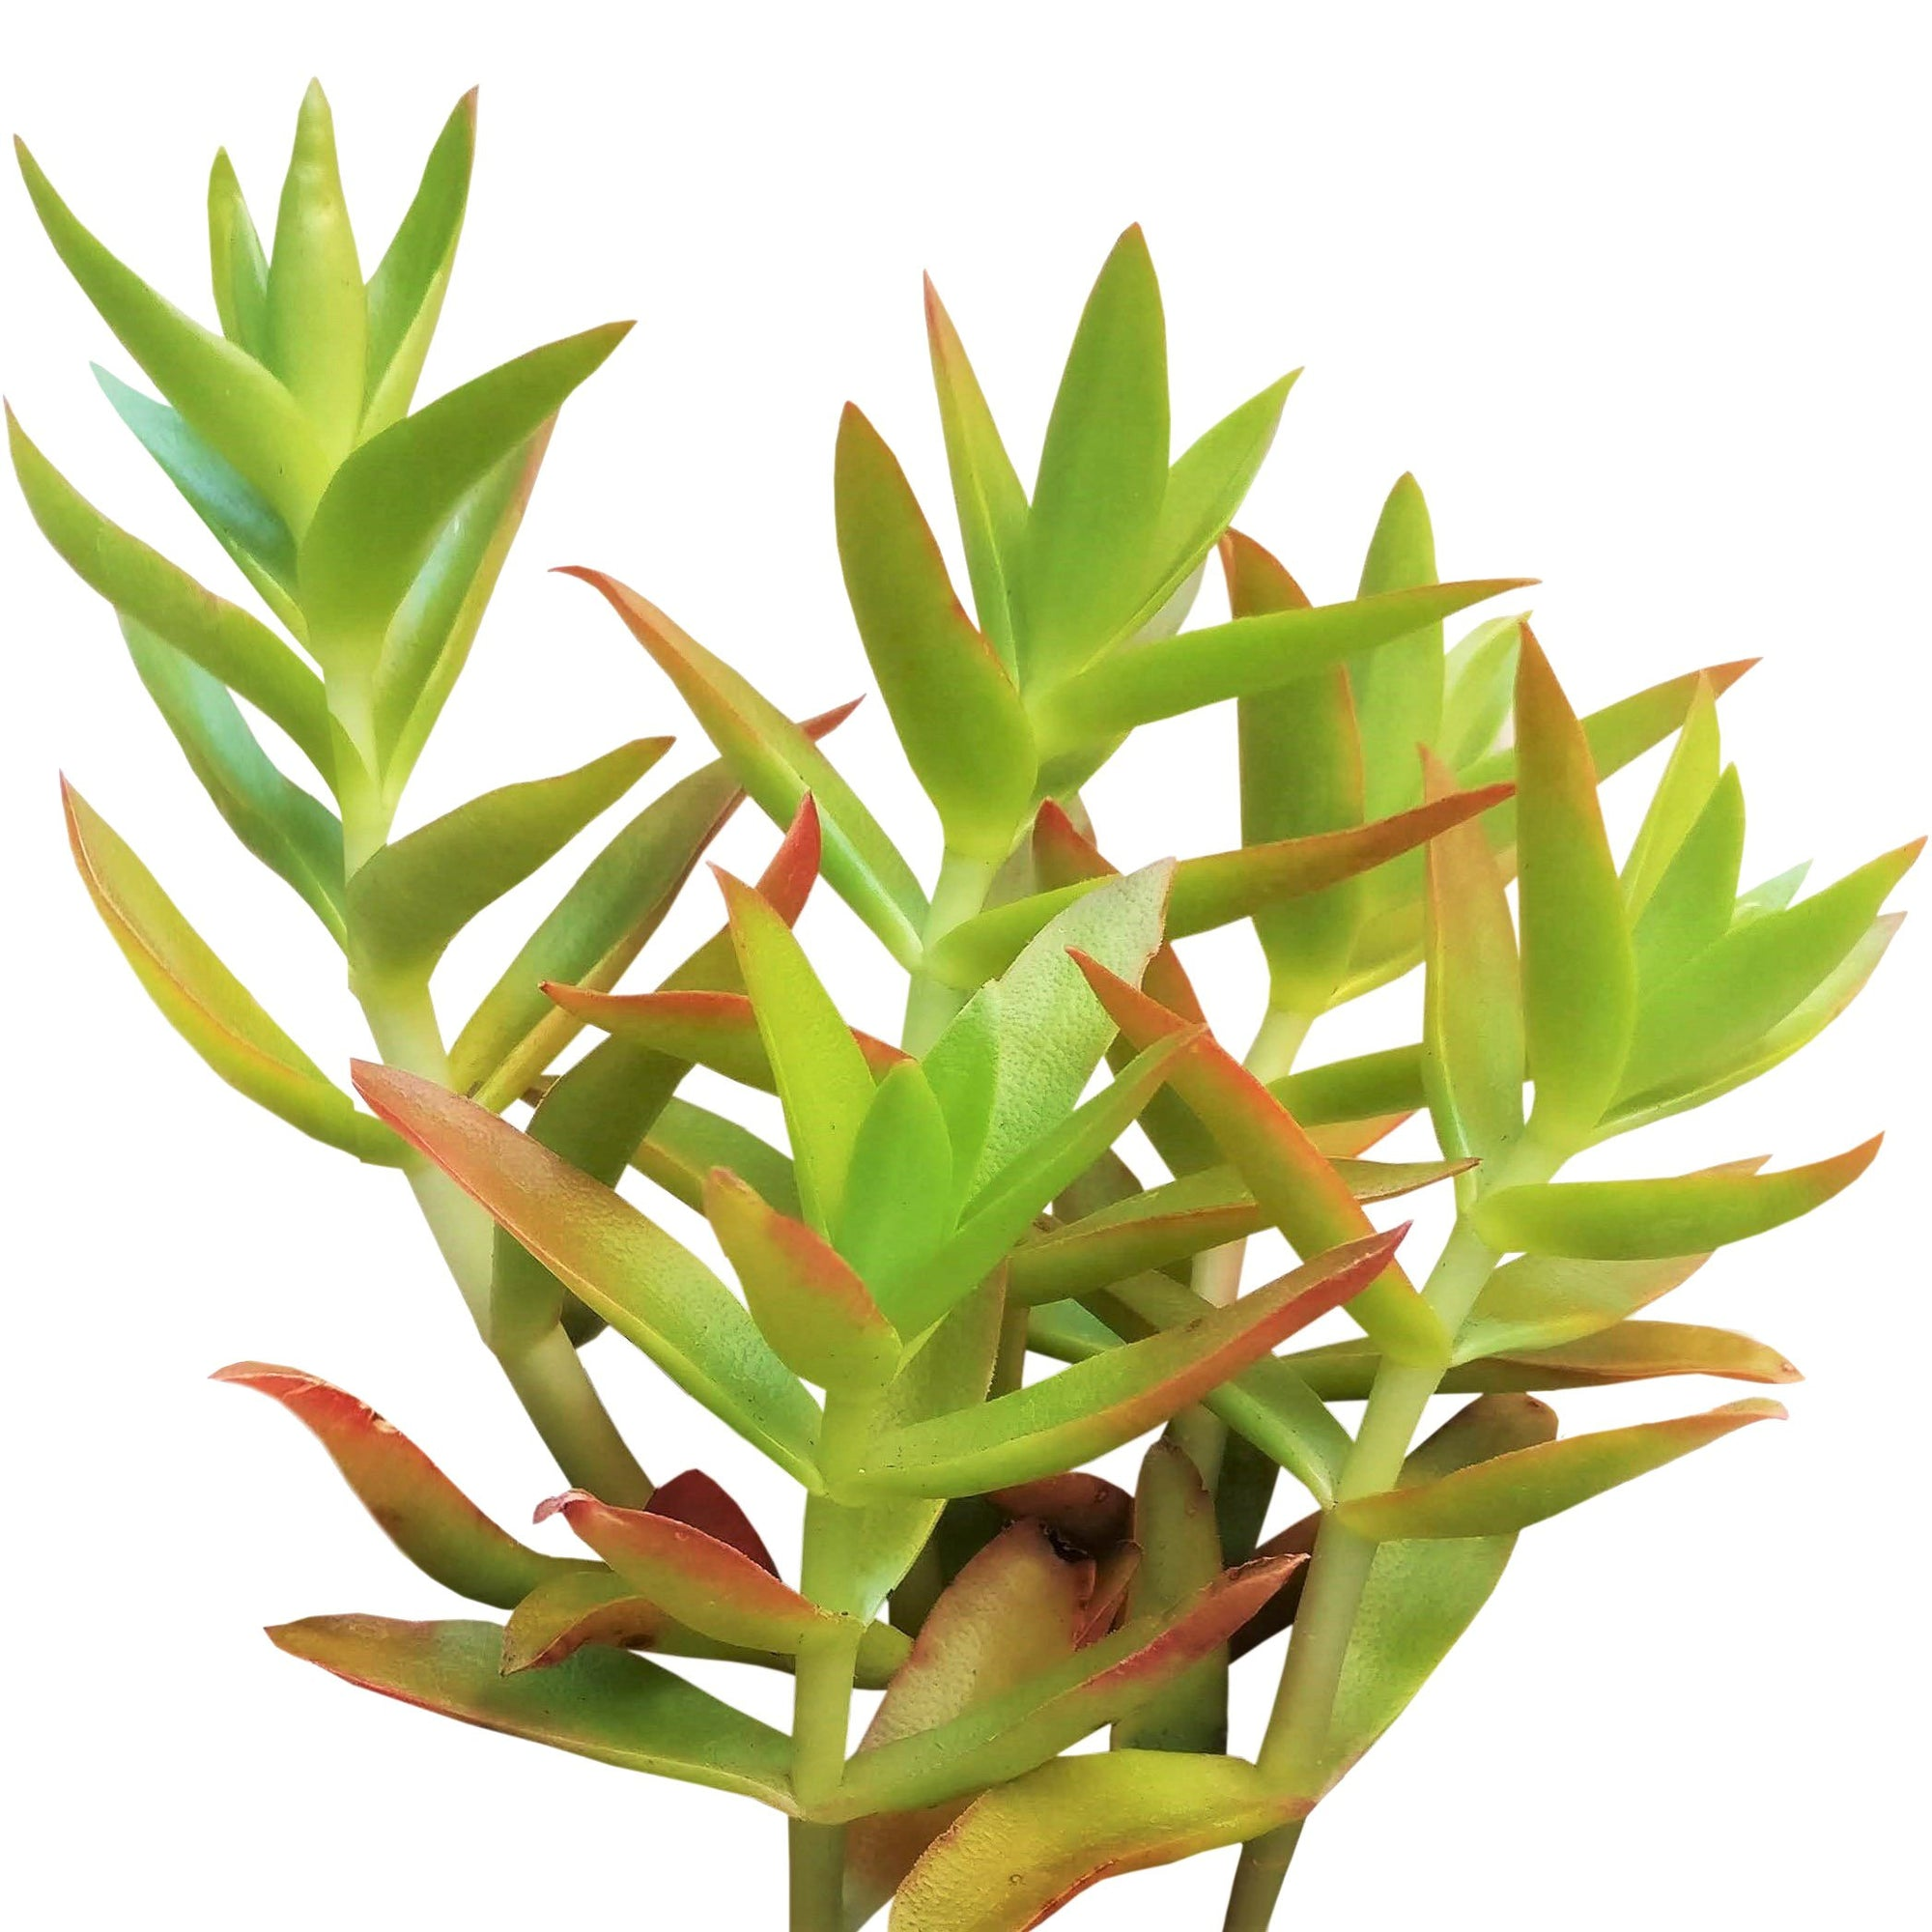 Crassula Campfire for Sale, succulents shop in California, succulent plant, succulent subscription, succulent care tips, indoor succulents, succulents garden, how to grow succulents, Rare succulents, Crassula Campfire in California, How to grow Crassula Campfire